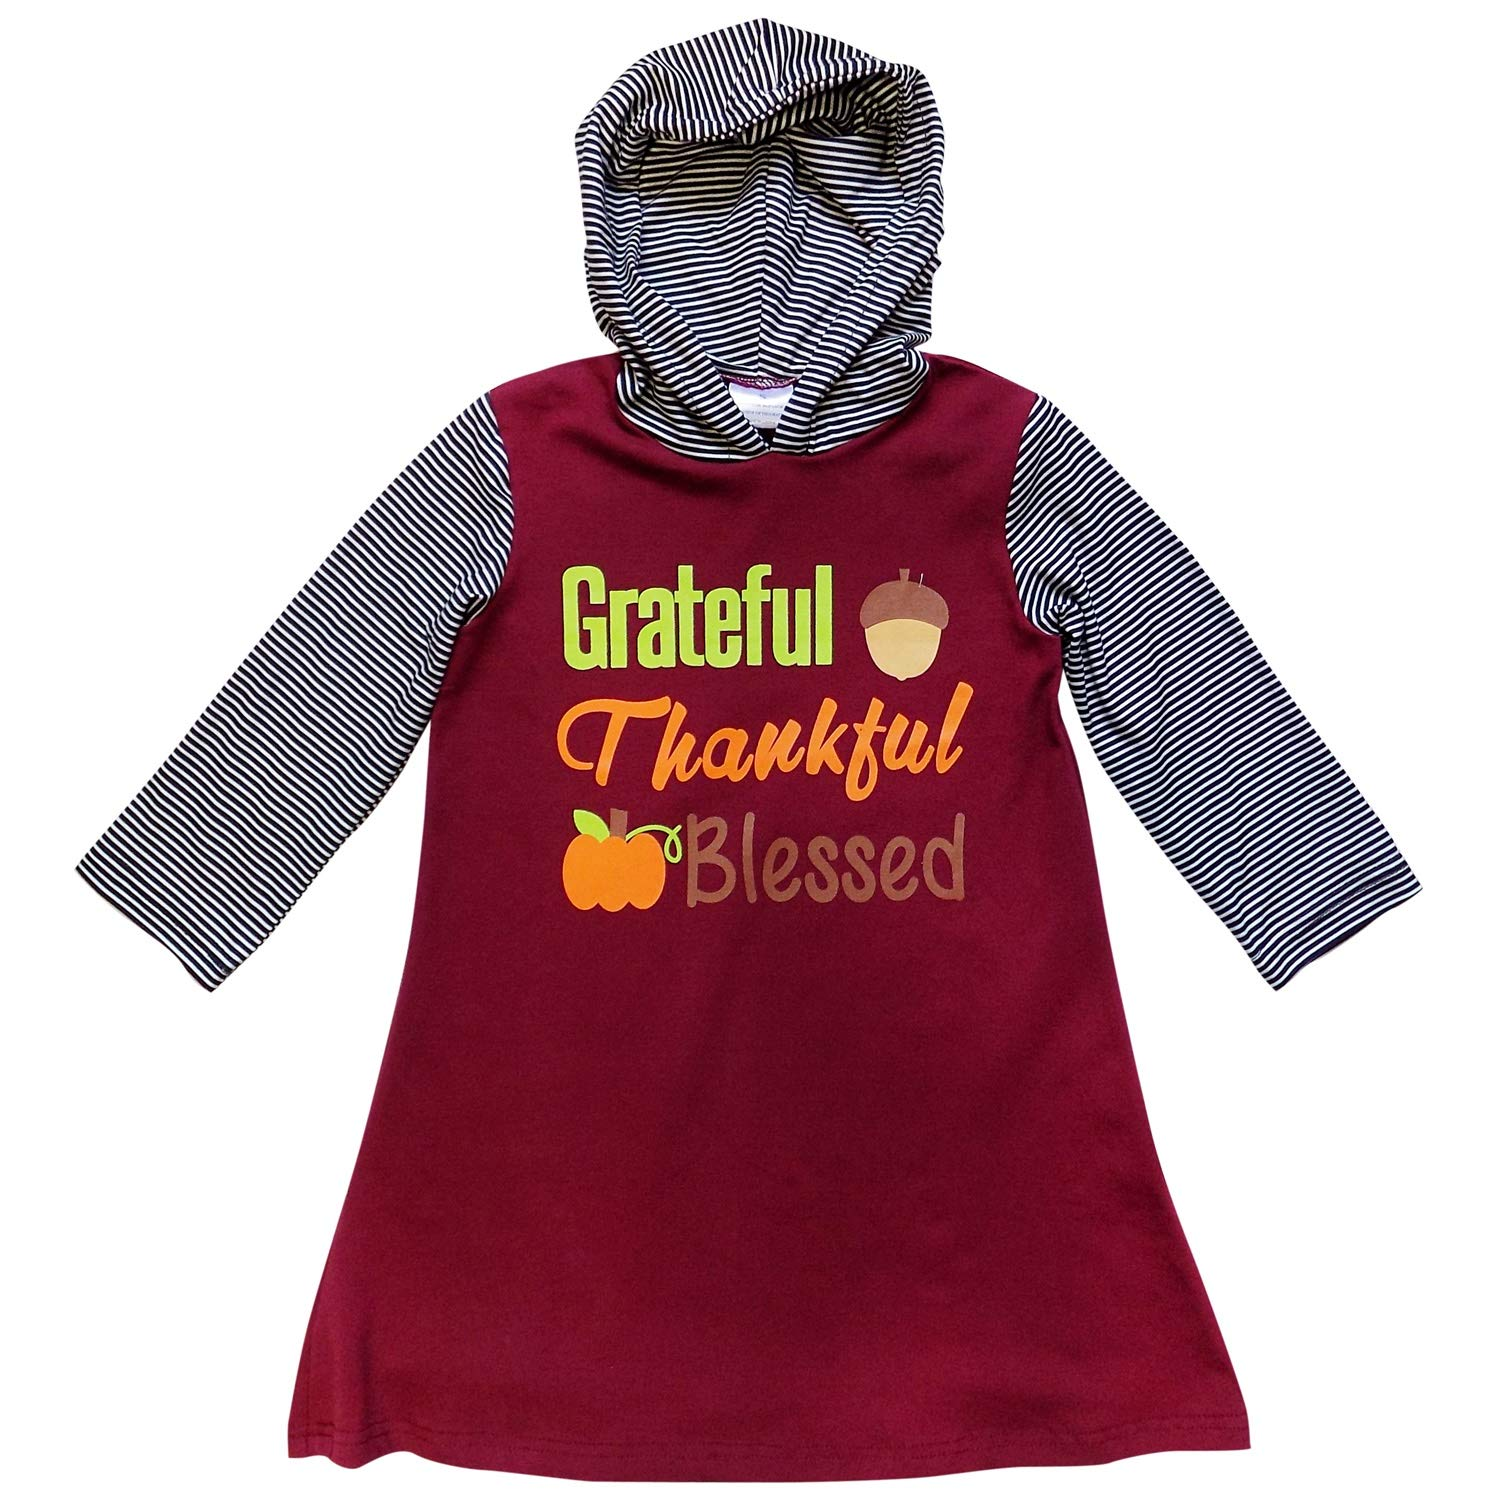 So Sydney Girls Toddler Fall Holiday Hoodie Dress Thanksgiving Thankful Blessed